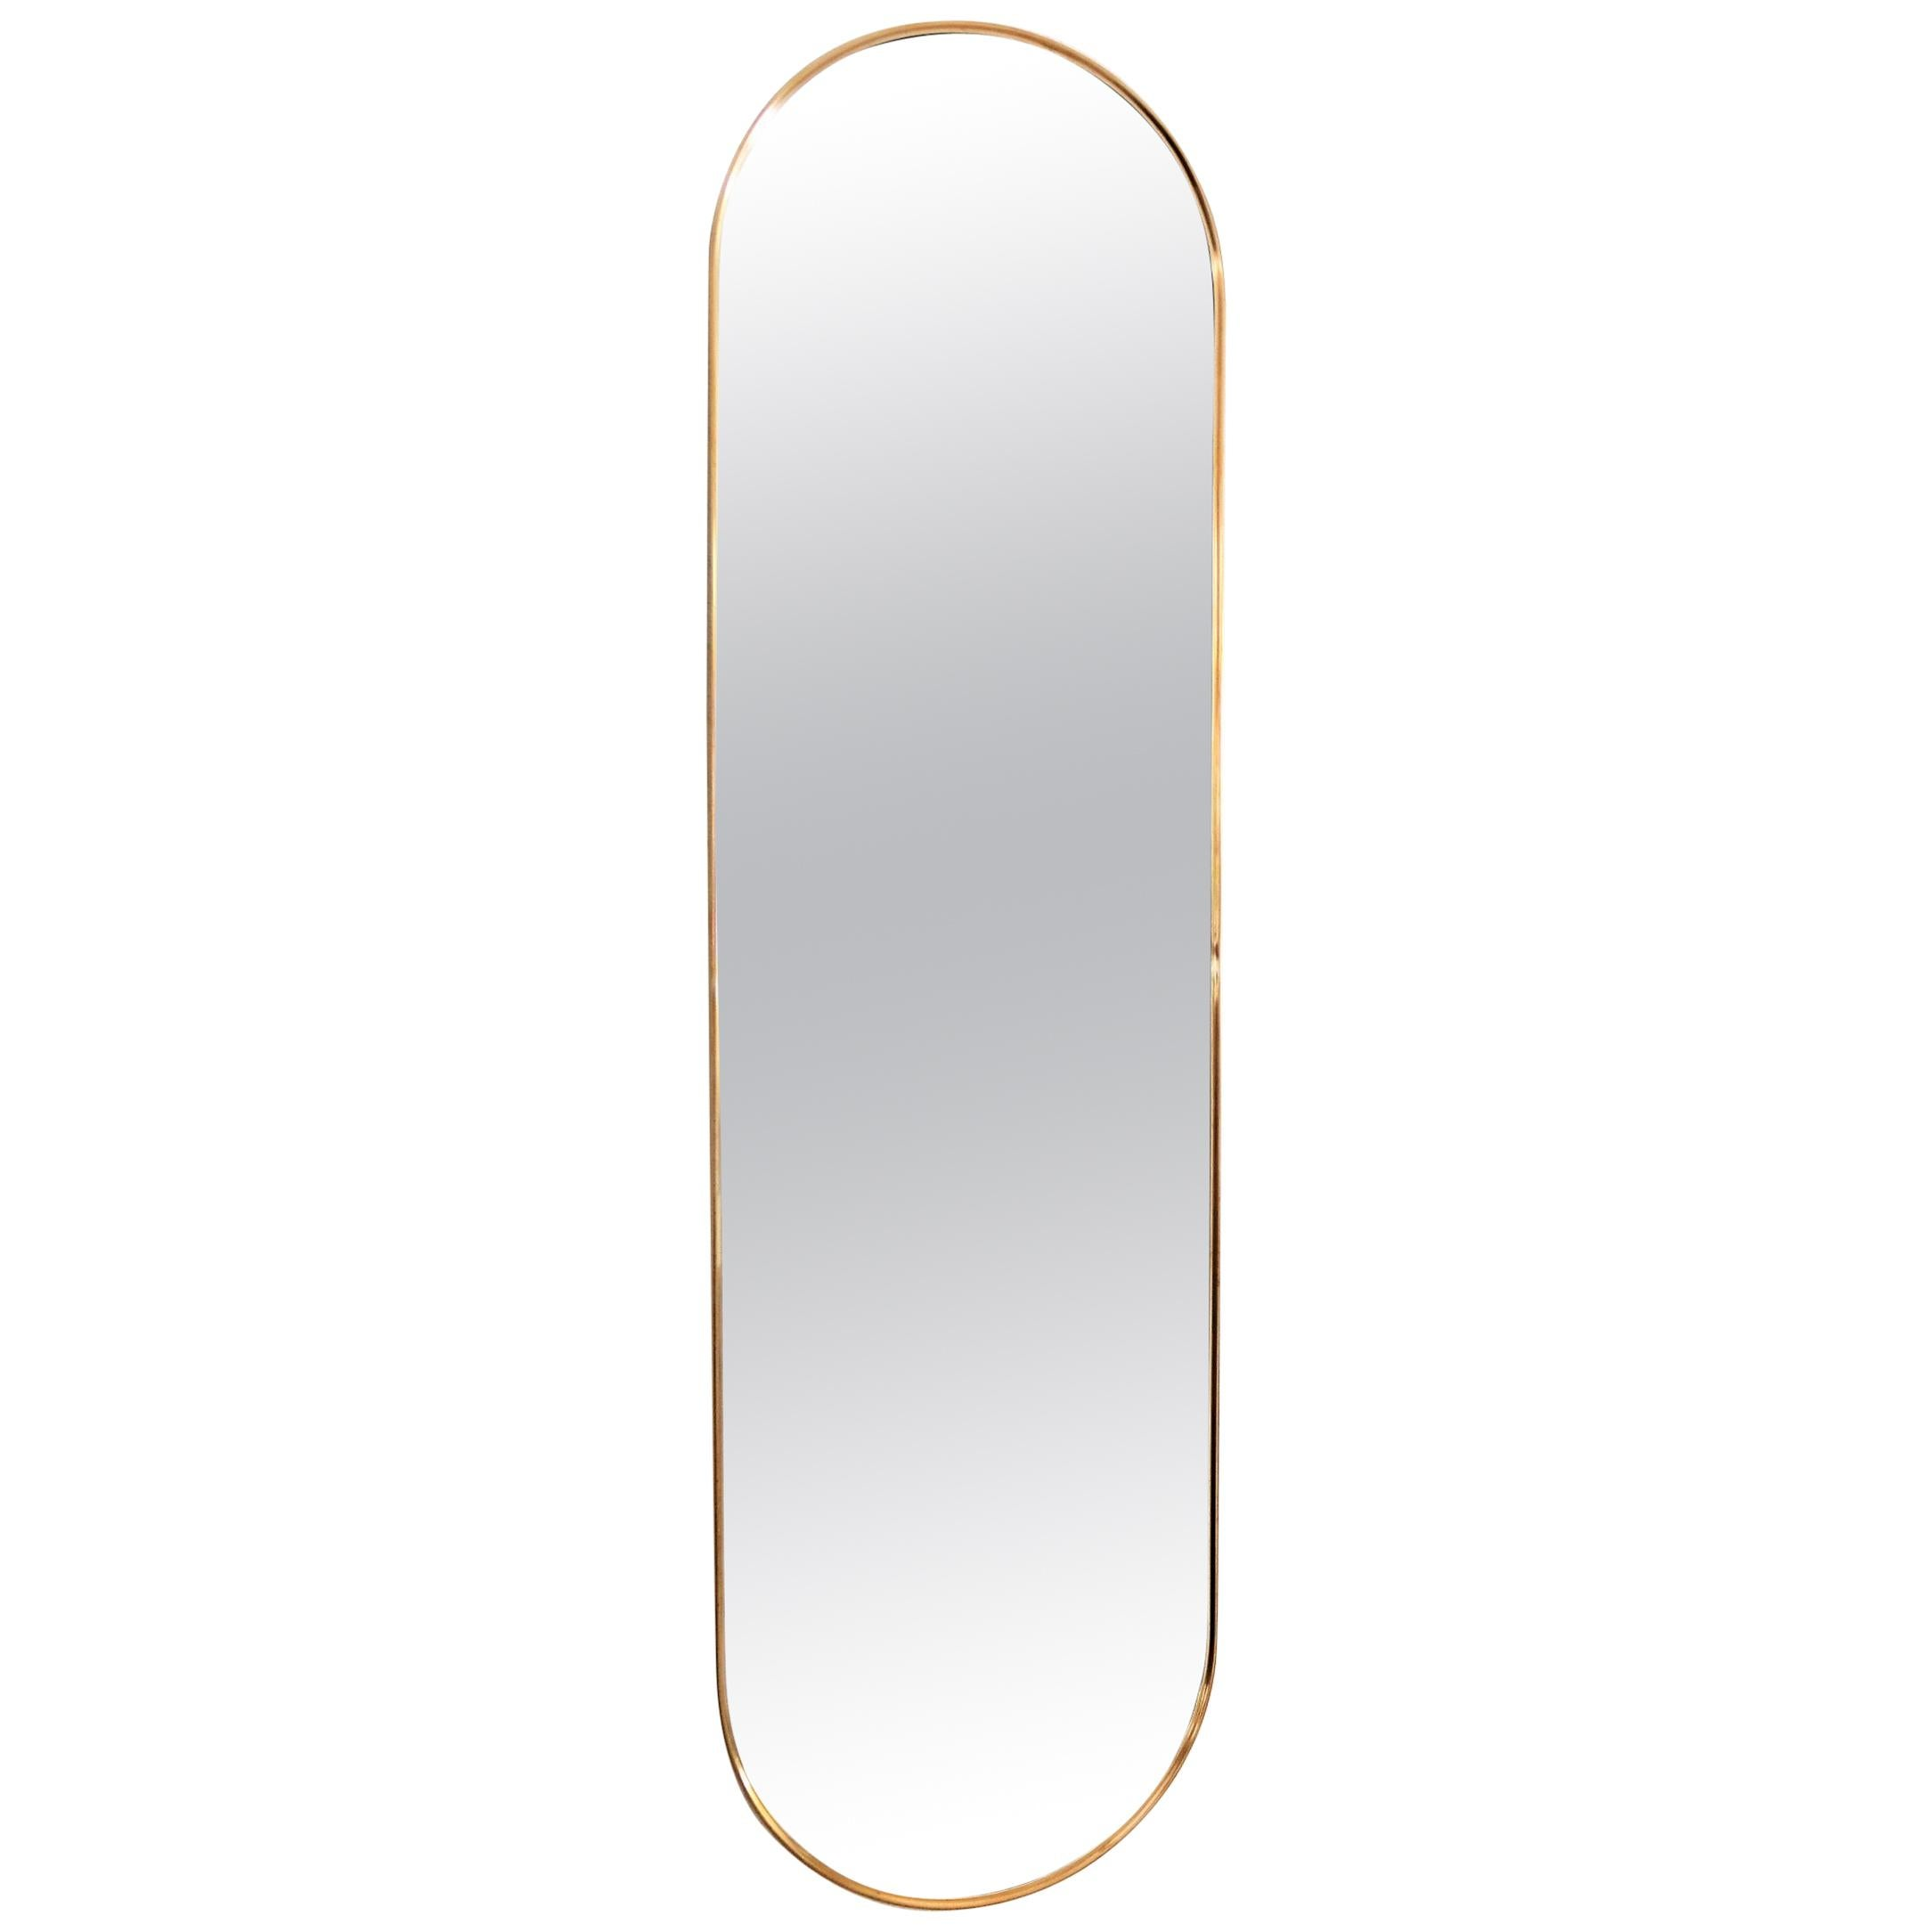 Italian Midcentury Oval Wall Mirror with Brass Frame, 1970s